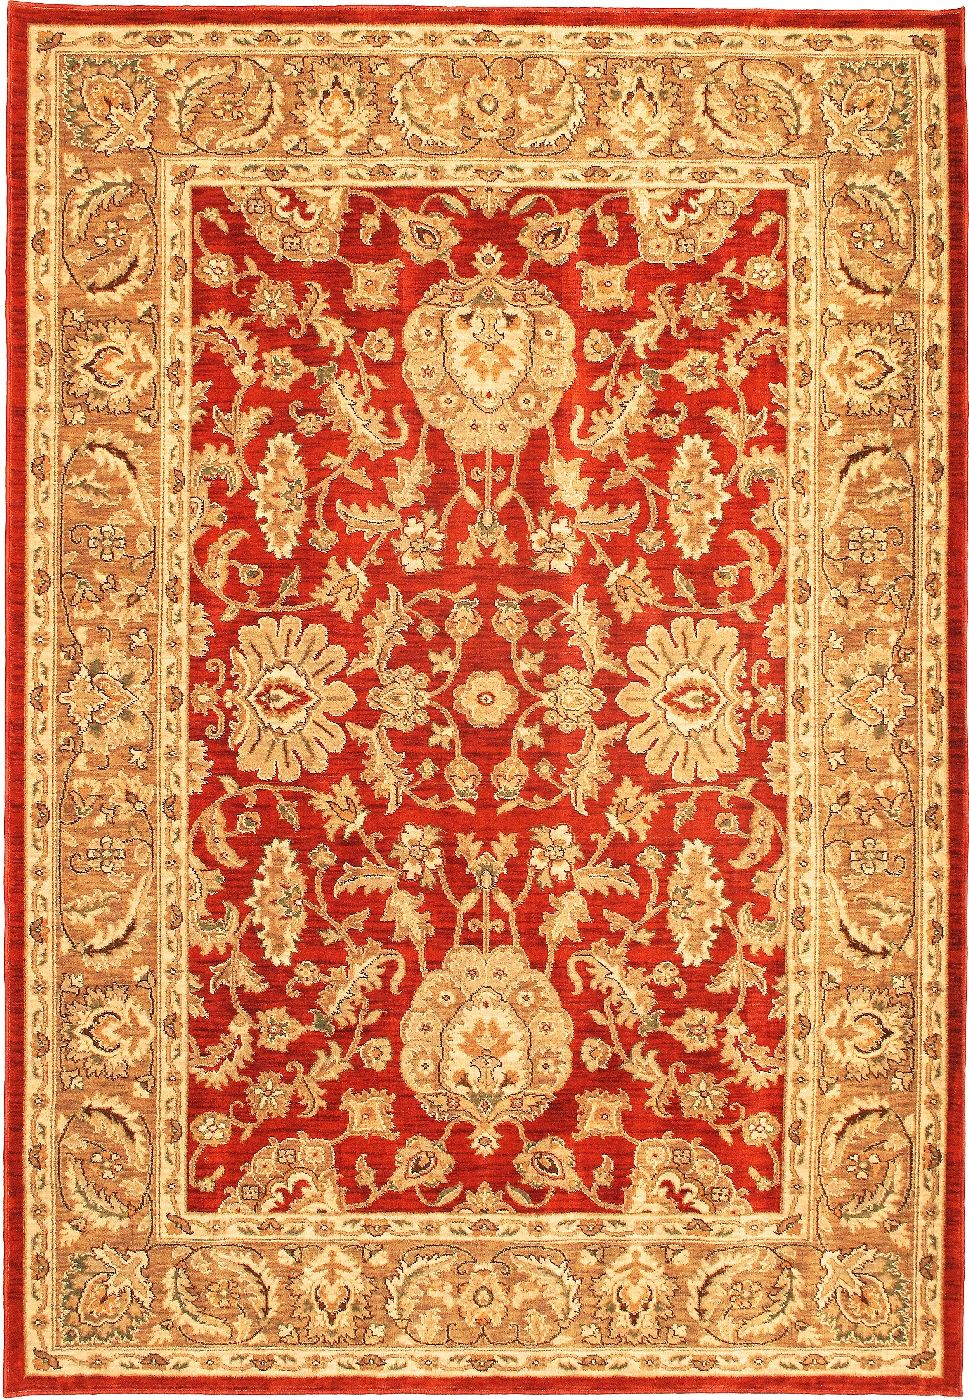 ecarpet gallery lotus garden coral red traditional area rug collection